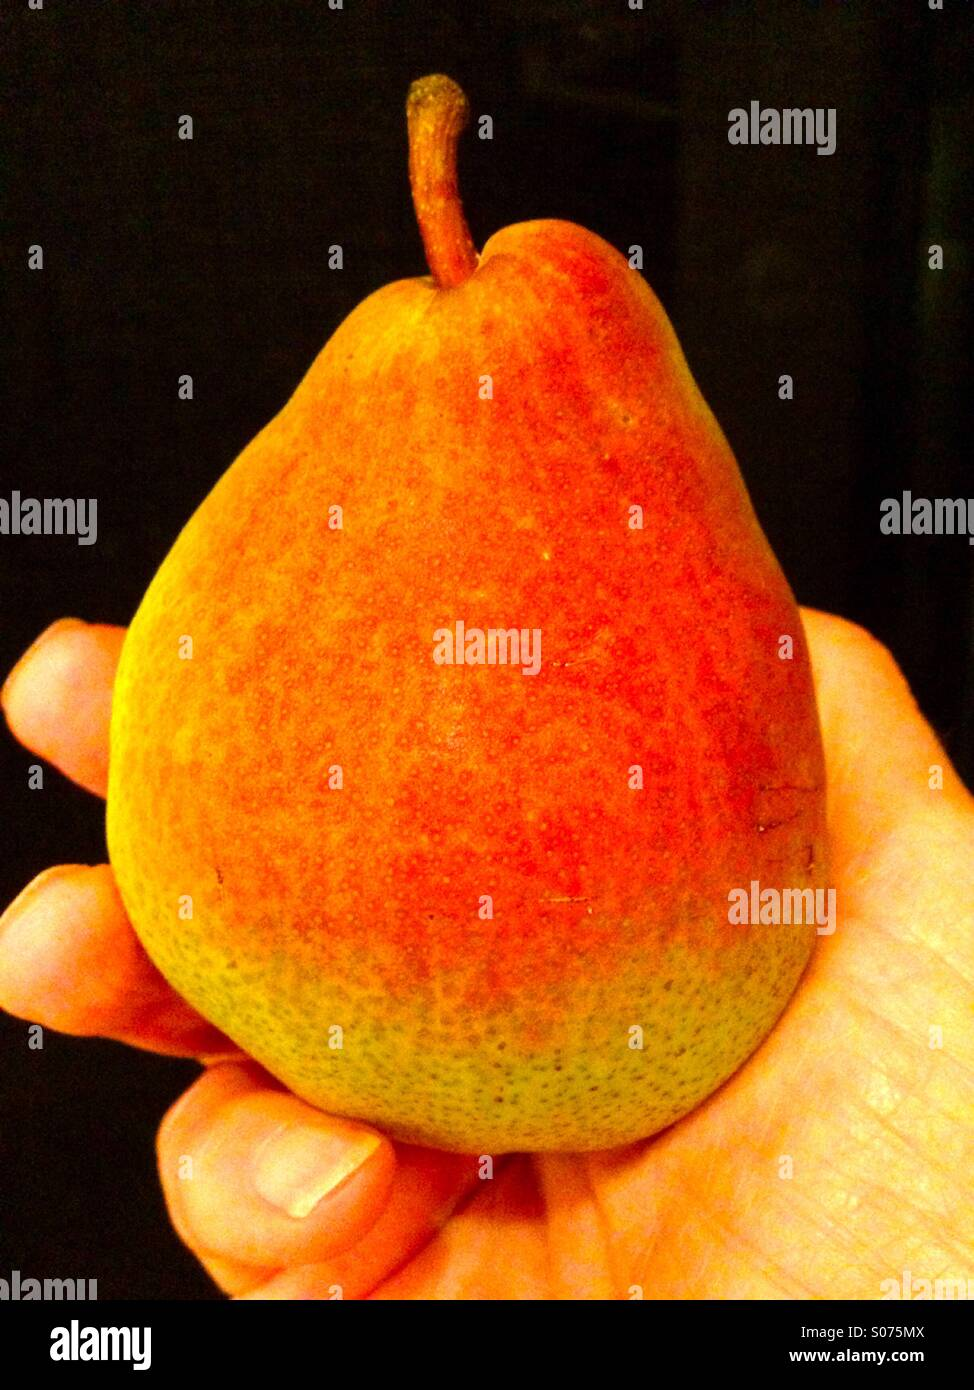 Colorful ripe pear in hand - Stock Image